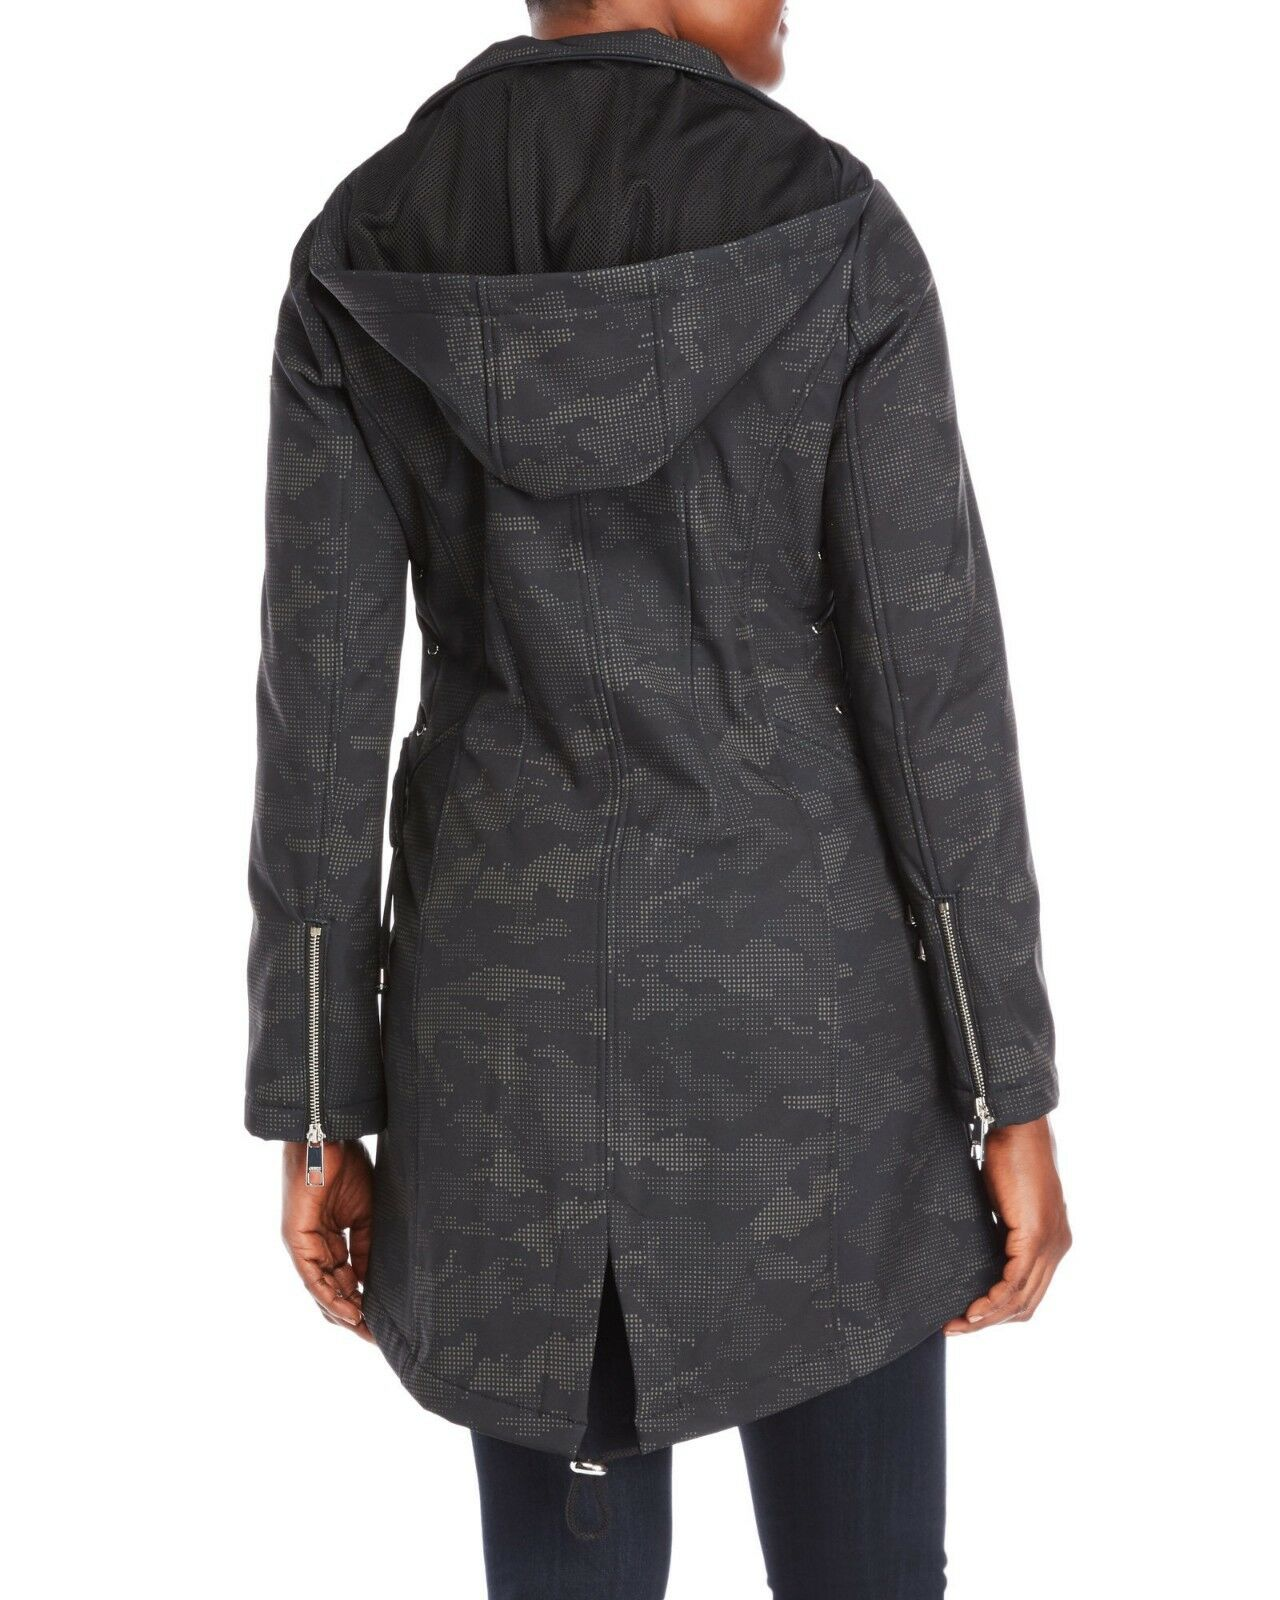 NEW  Guess Hooded Lace-Up Digital Camouflage Softshell Softshell Softshell Coat Size M 51f78b